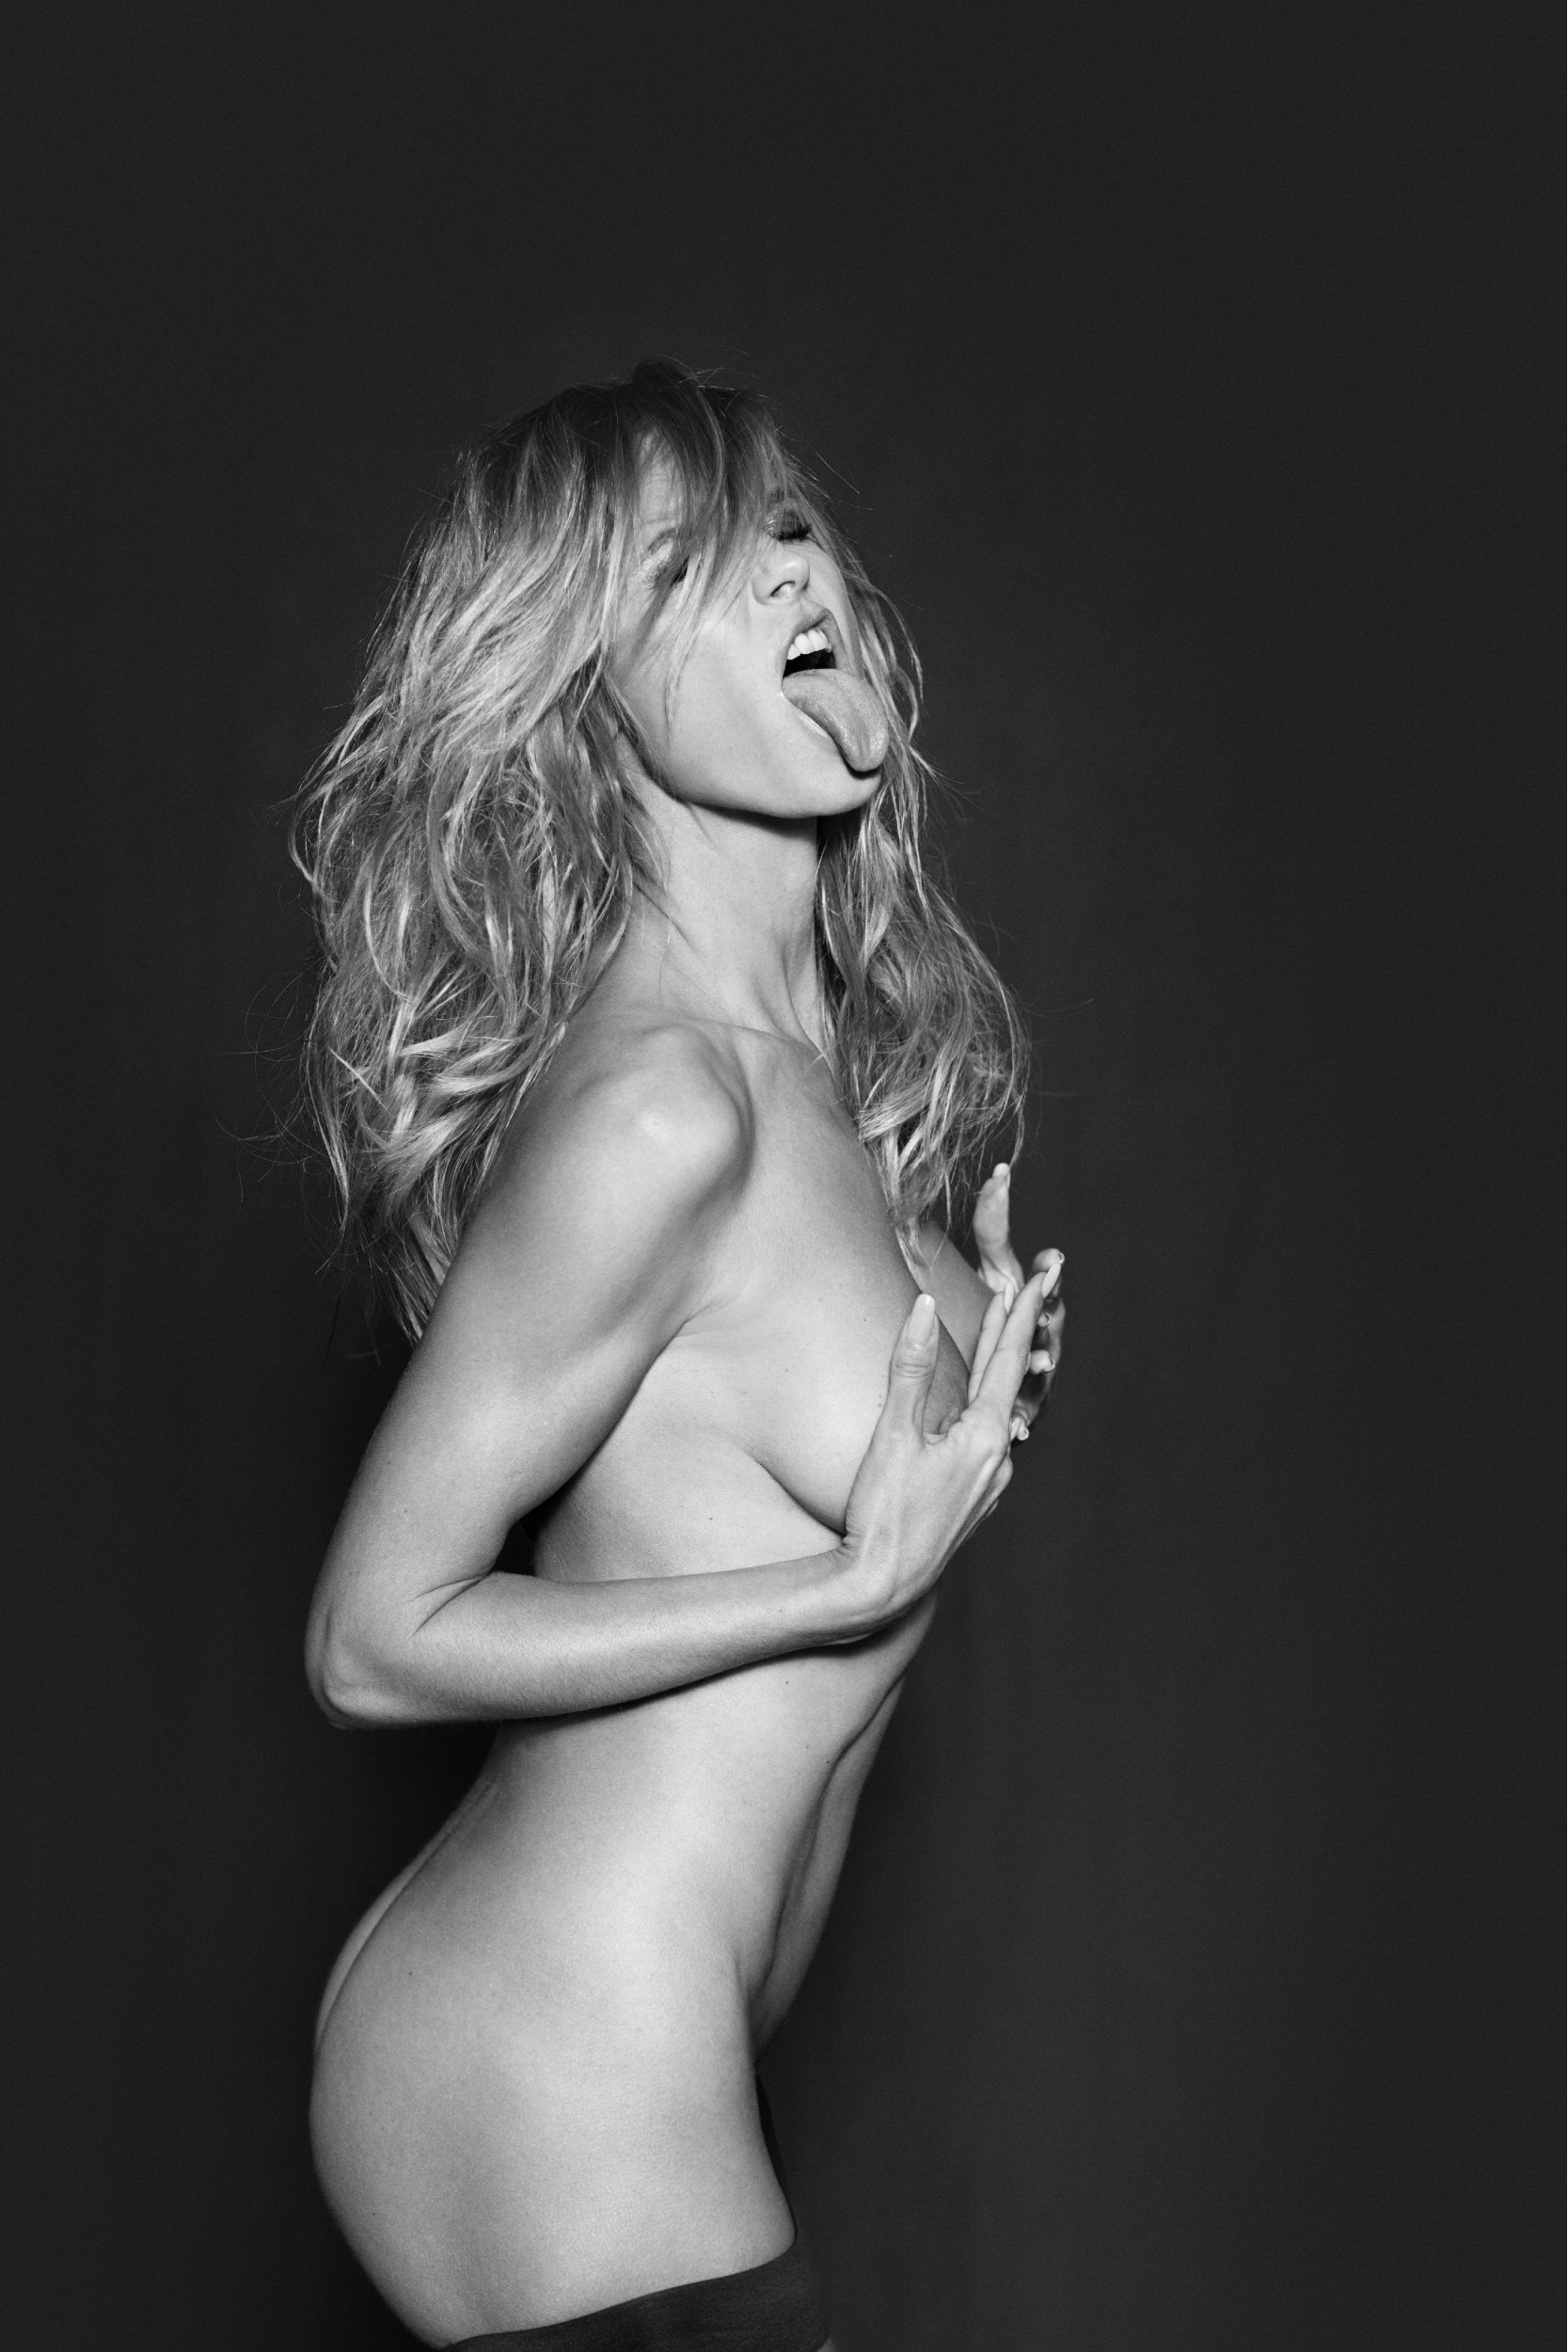 Heidi-Misbehaved-by-Russell-James.jpg